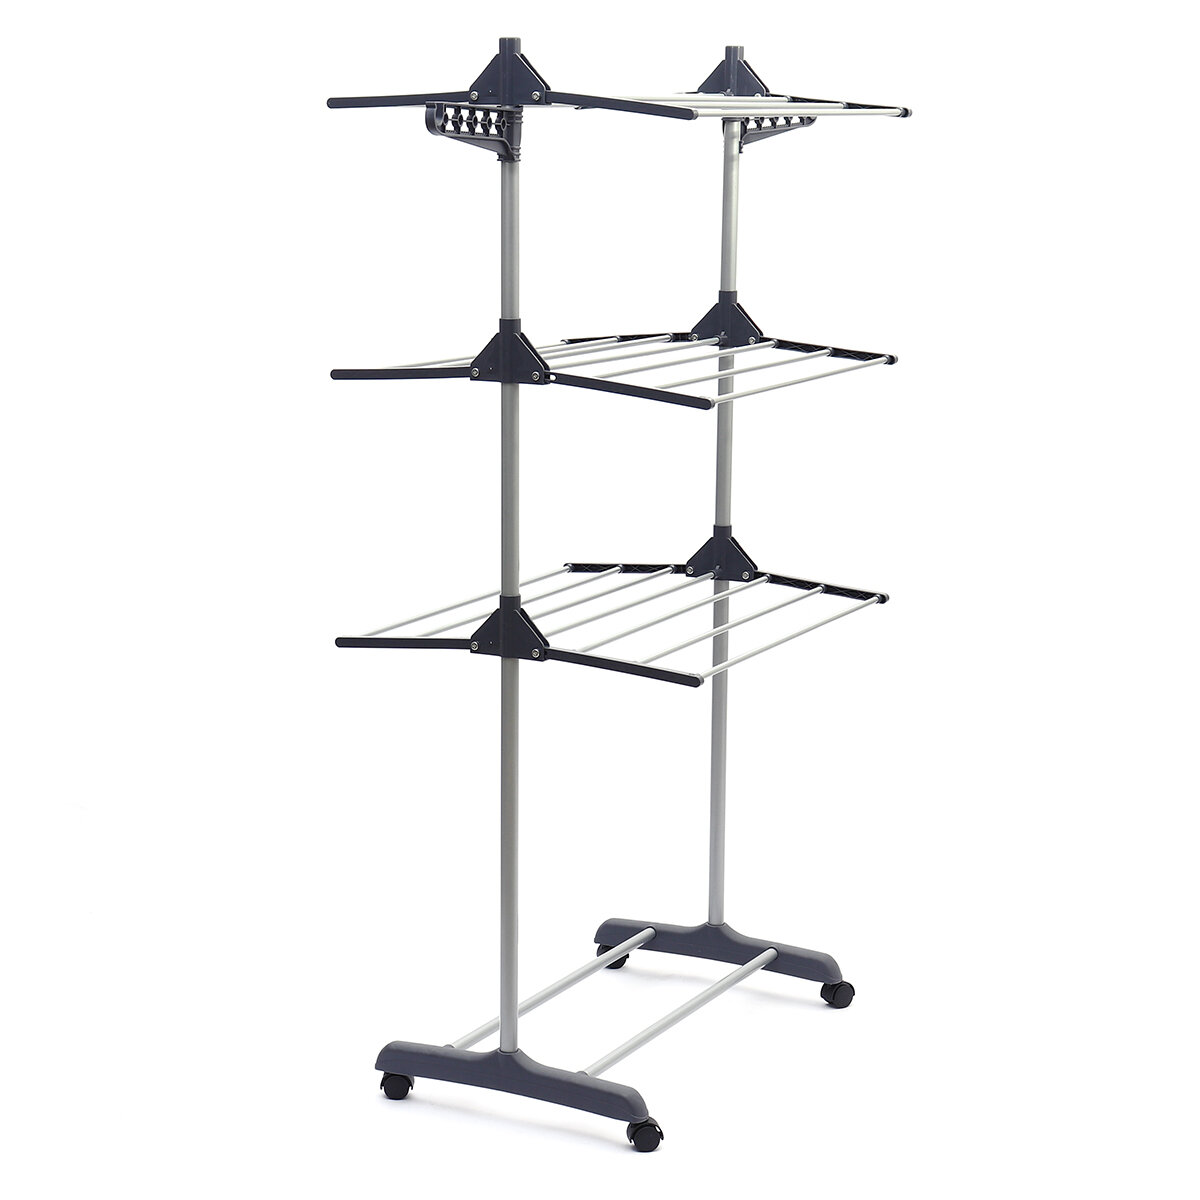 4 Floors Foldable Clothes Drying Rack With 4 Wheels For Indoor/Outdoor Use